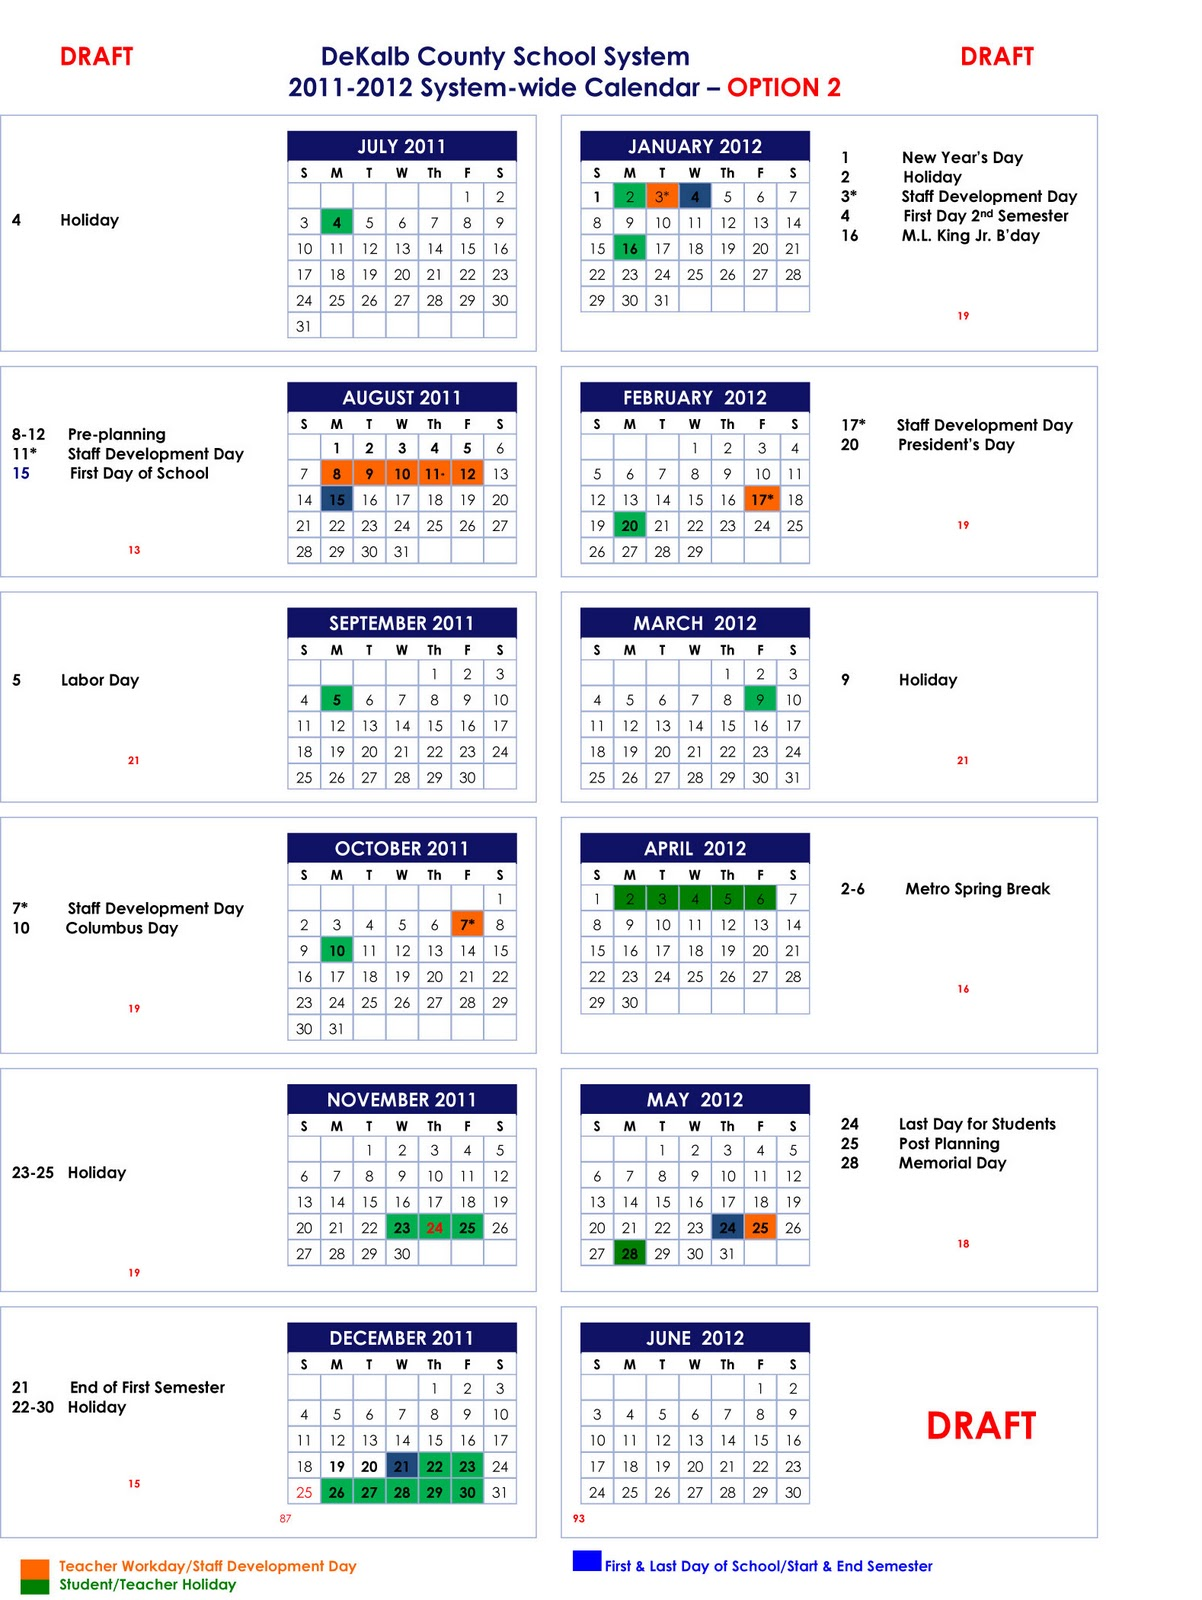 2011-2012 and 2012-2013 School Calendar Options